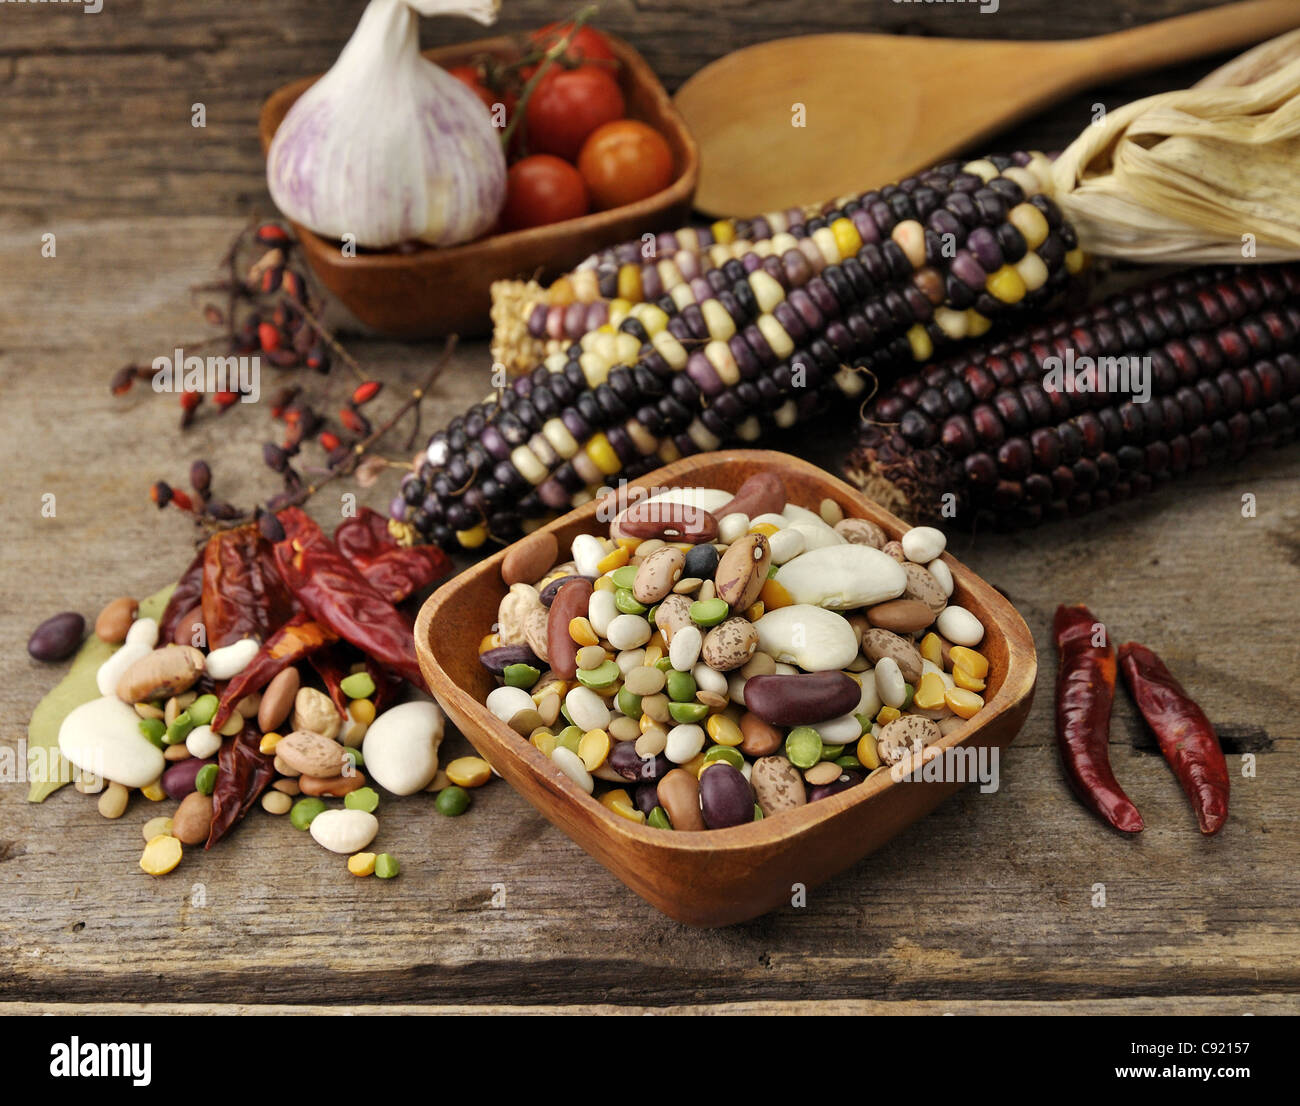 Colorful Mix Of Beans, Lentil, Green And Yellow Peas - Stock Image